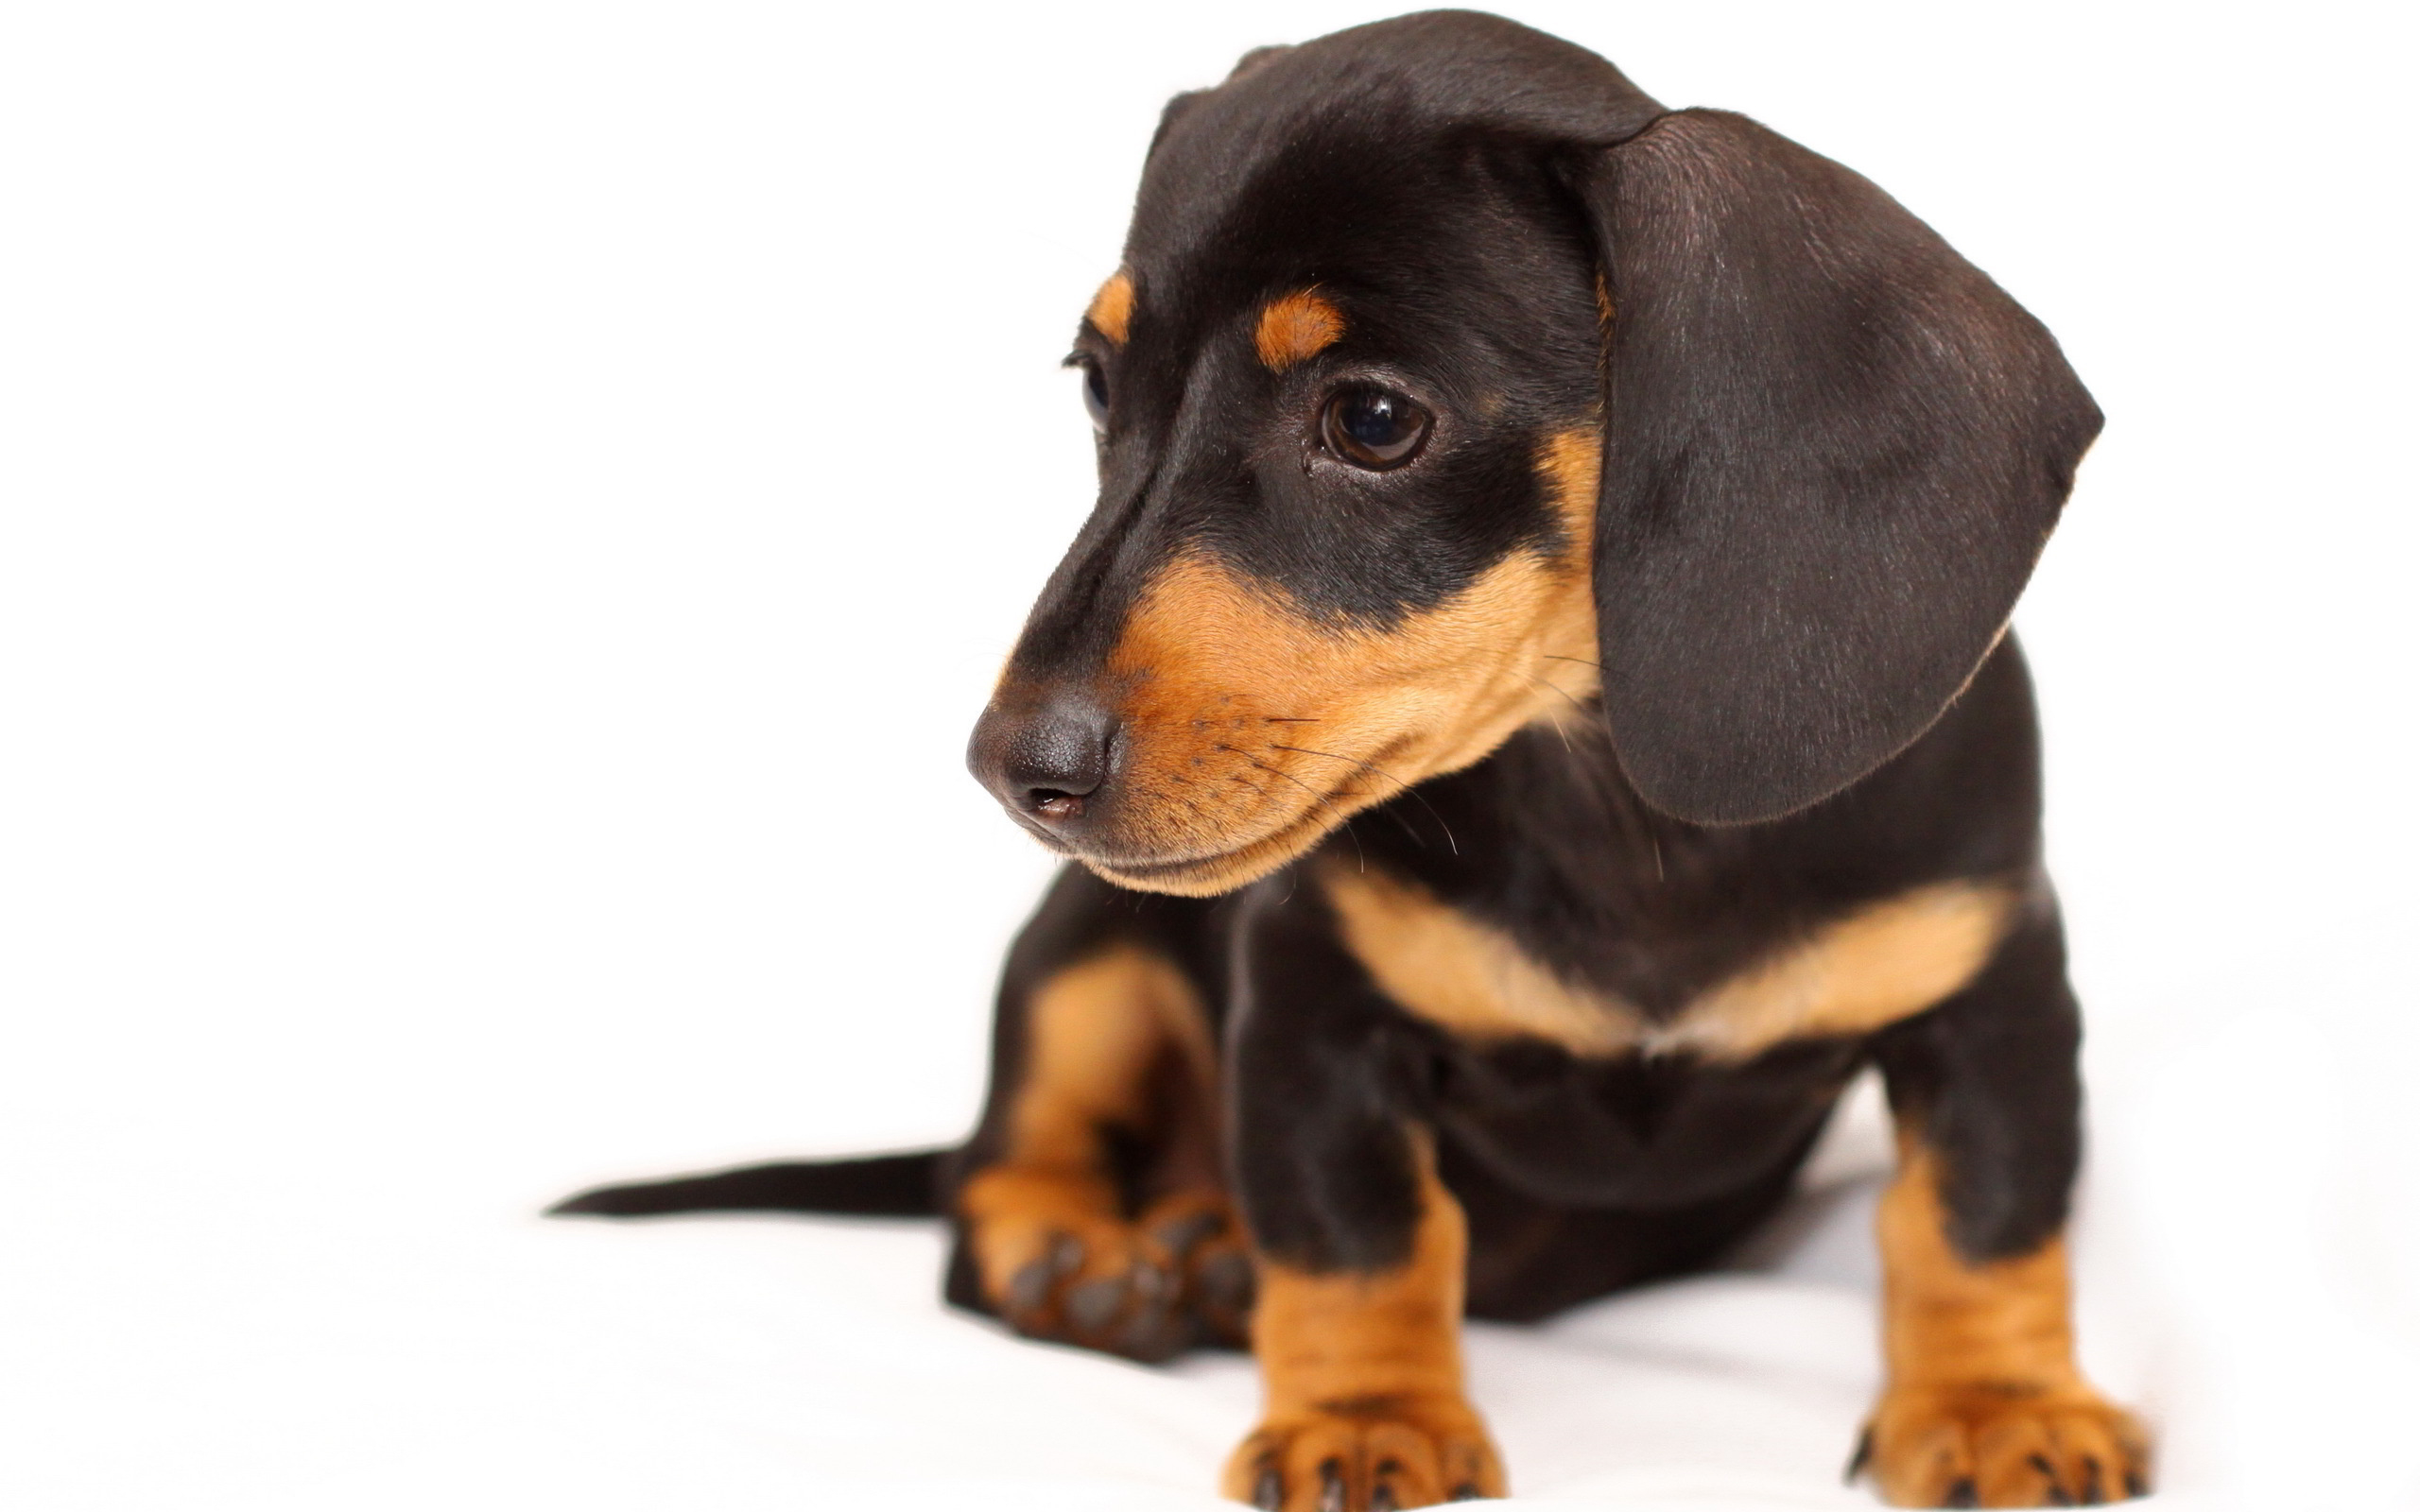 Super Cute Little Baby Wallpapers Doxie Puppy Wallpaper 2560x1600 12822